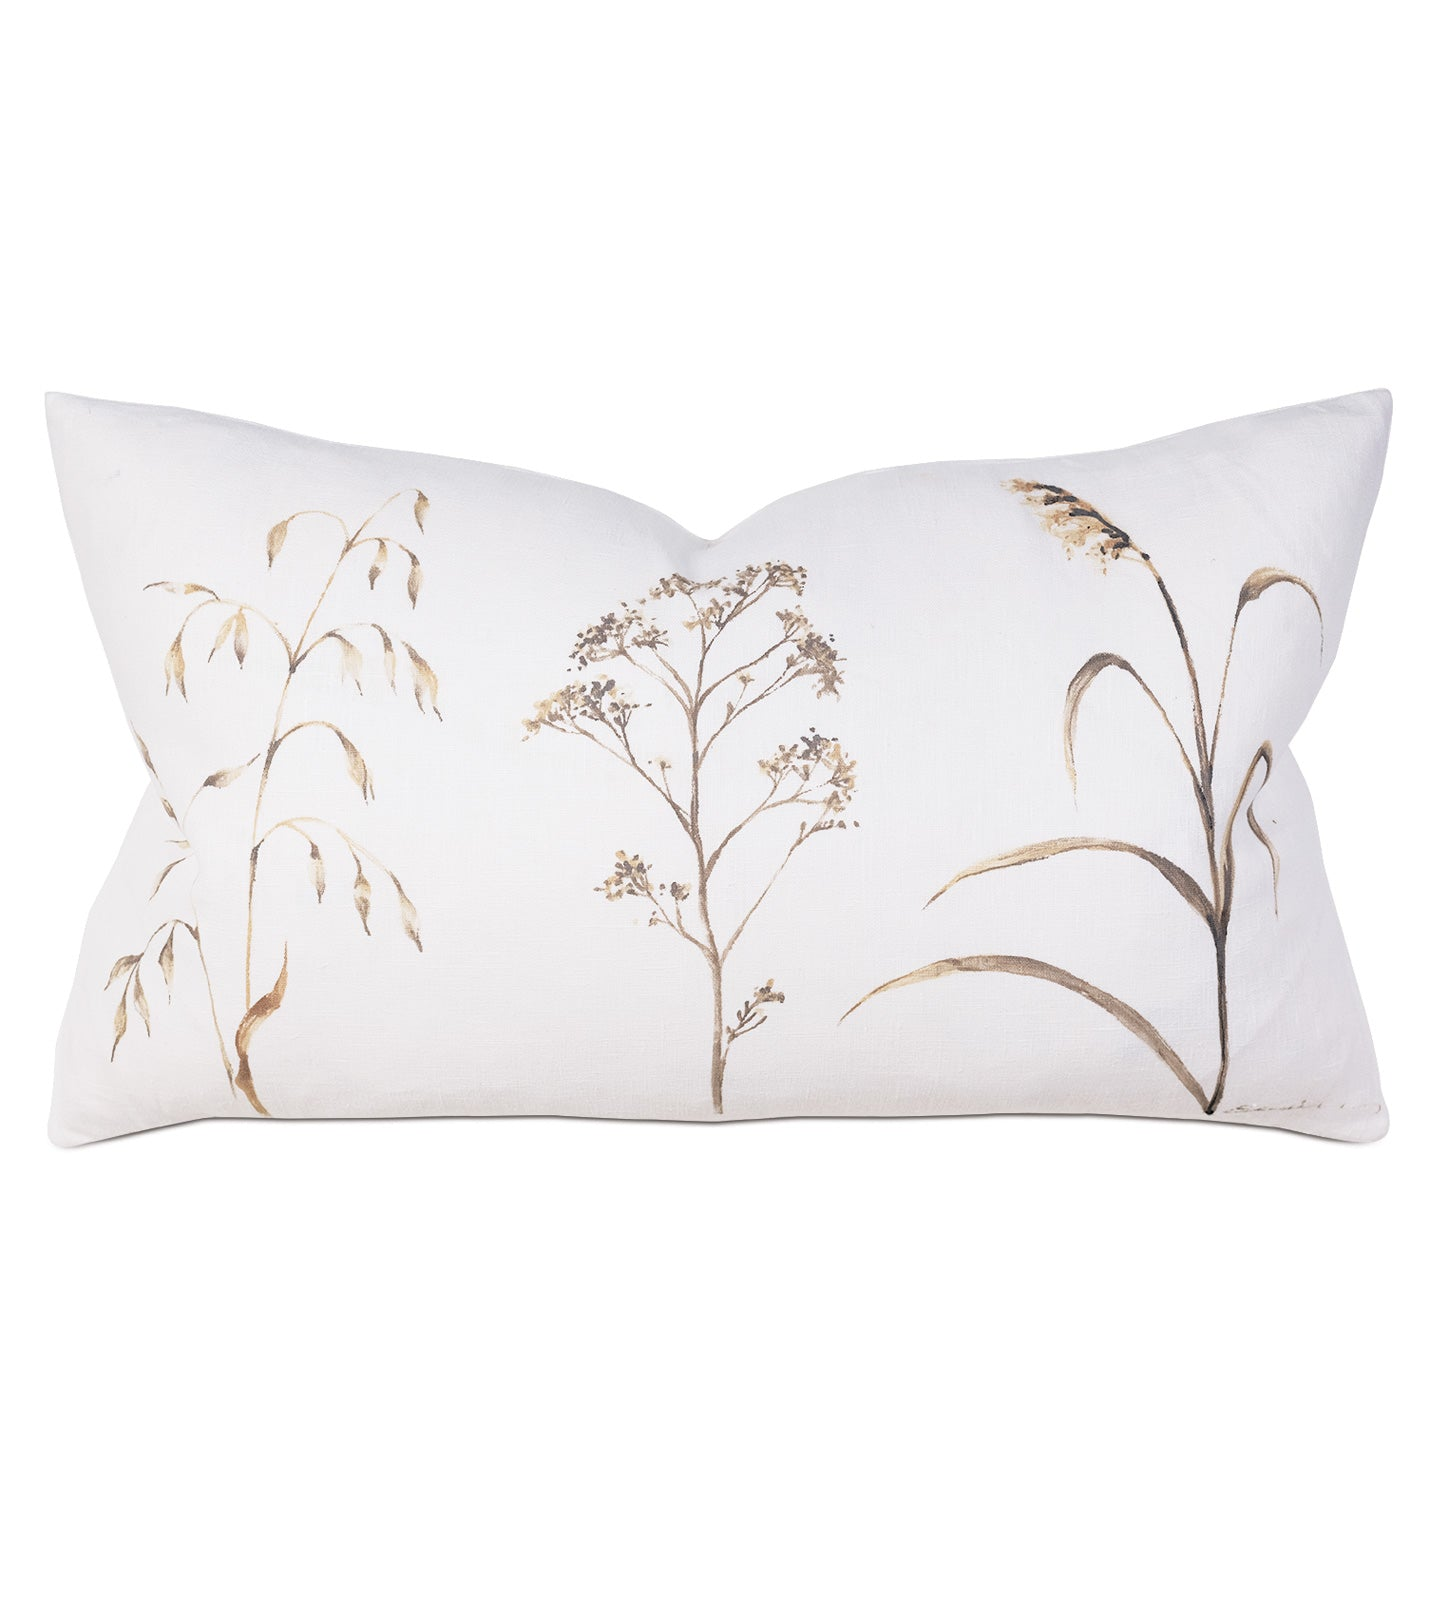 Wild Flower Mountain Lodge White Linen Lumbar Pillow Hand Painted 15 X Rustic Lodge Collection